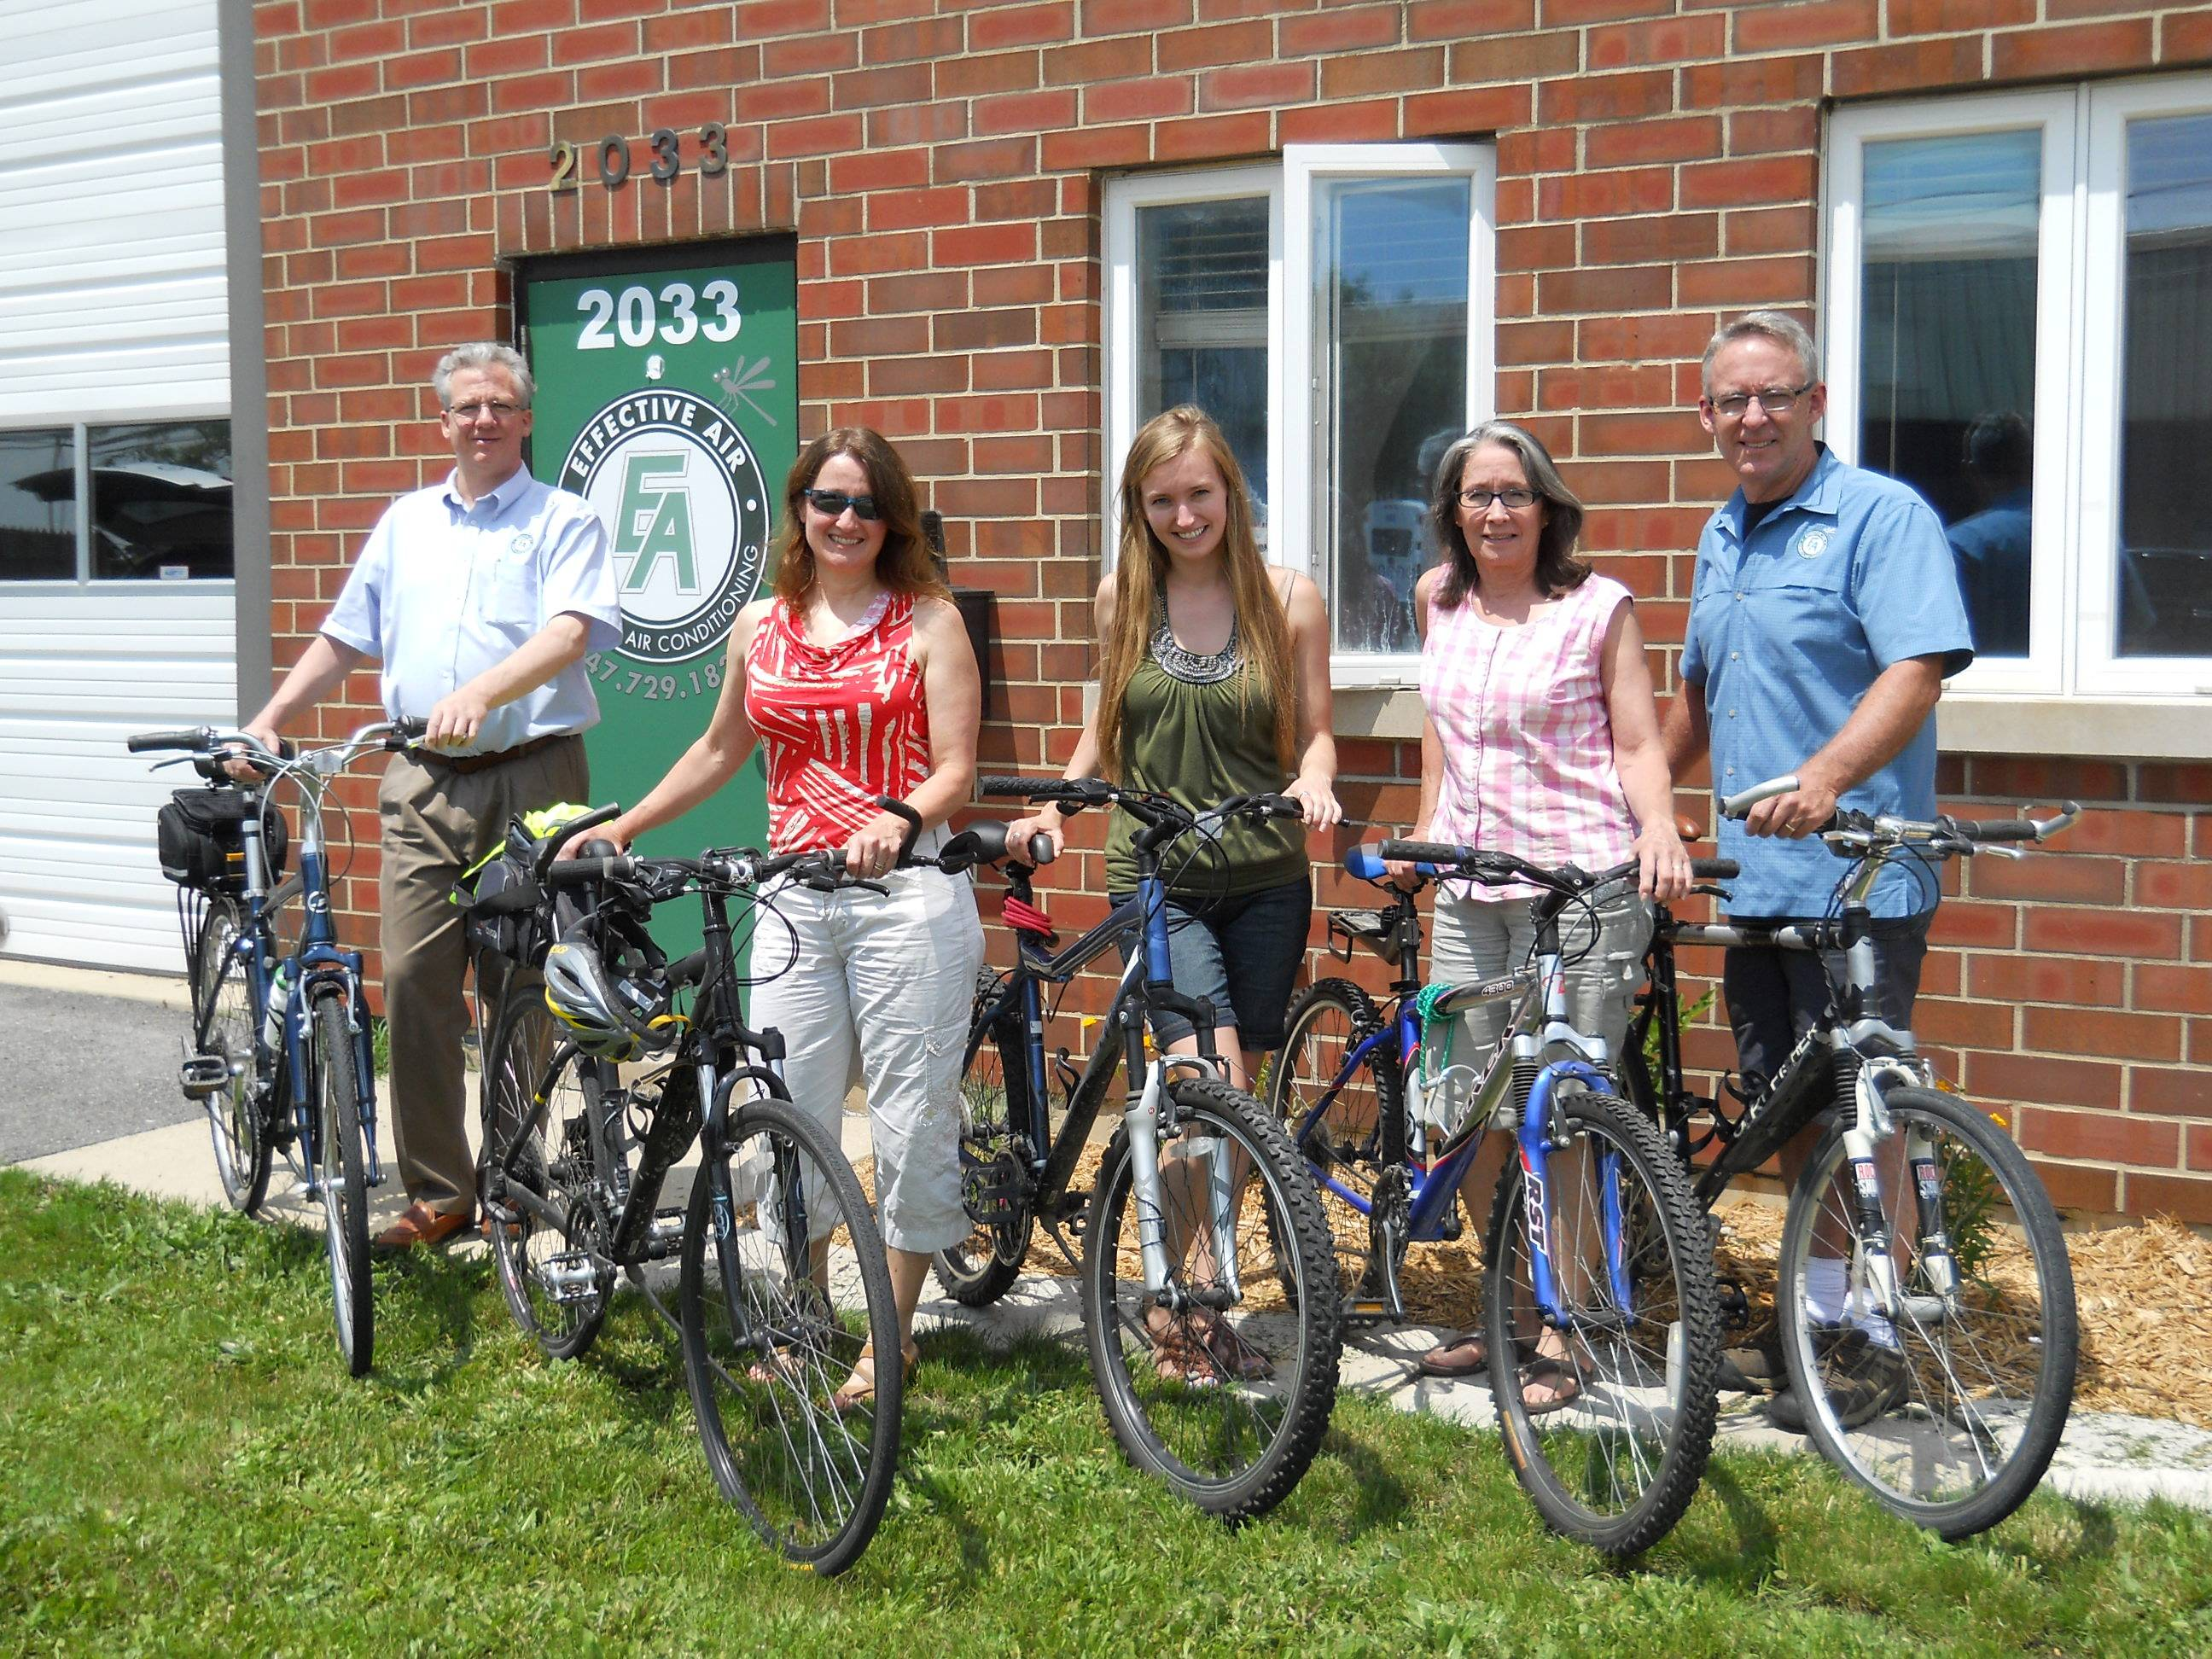 The office staff with their bikes outside their office in Glenview. From left to right: Ken (Office Assistant), Kim (President), Tracey (Executive Assistant), Janet (Office Assistant) & Jon (CEO)